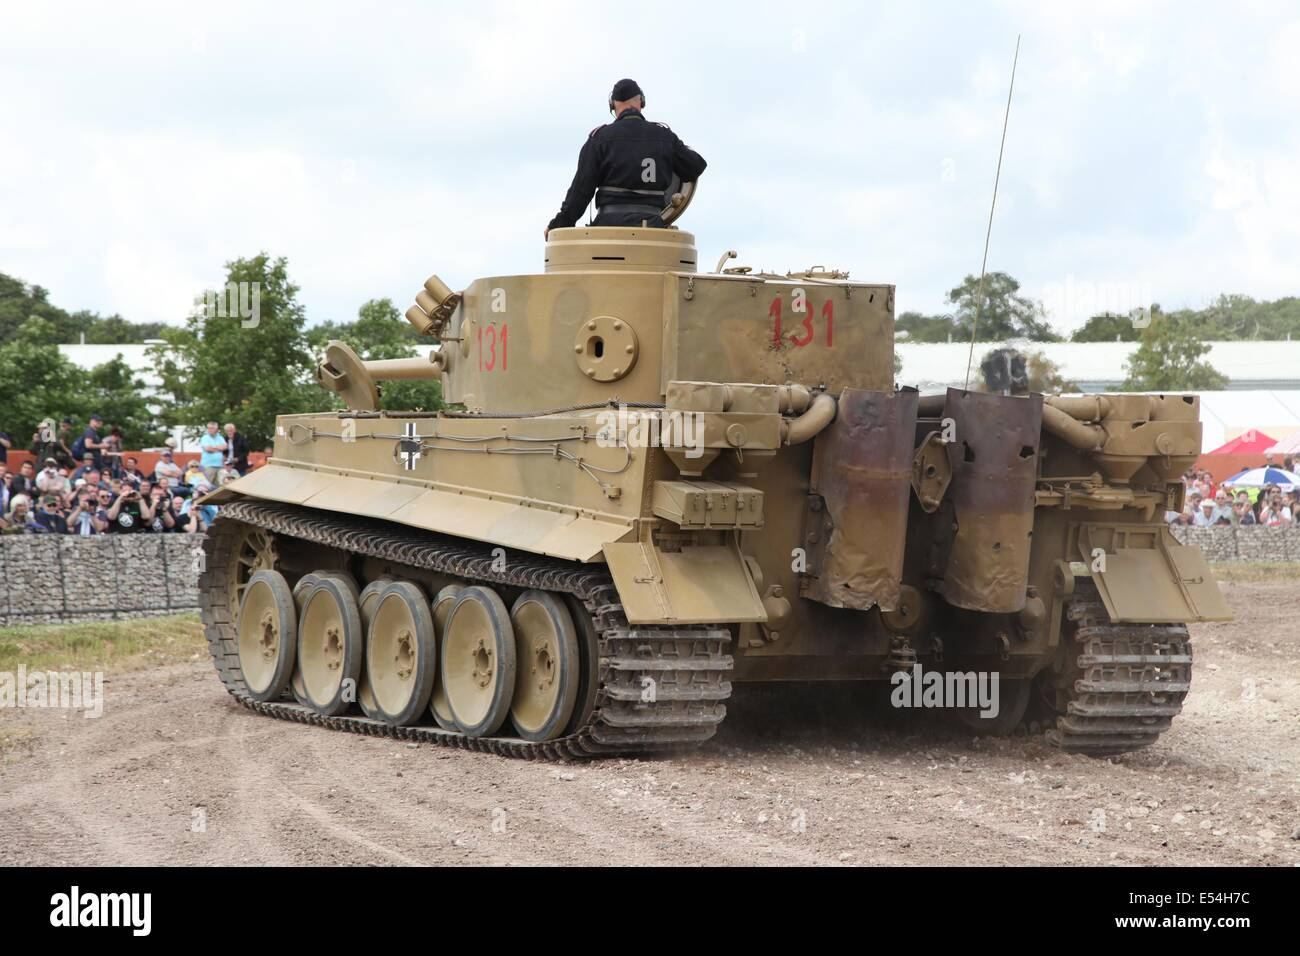 tiger 1 tank stockfotos tiger 1 tank bilder alamy. Black Bedroom Furniture Sets. Home Design Ideas